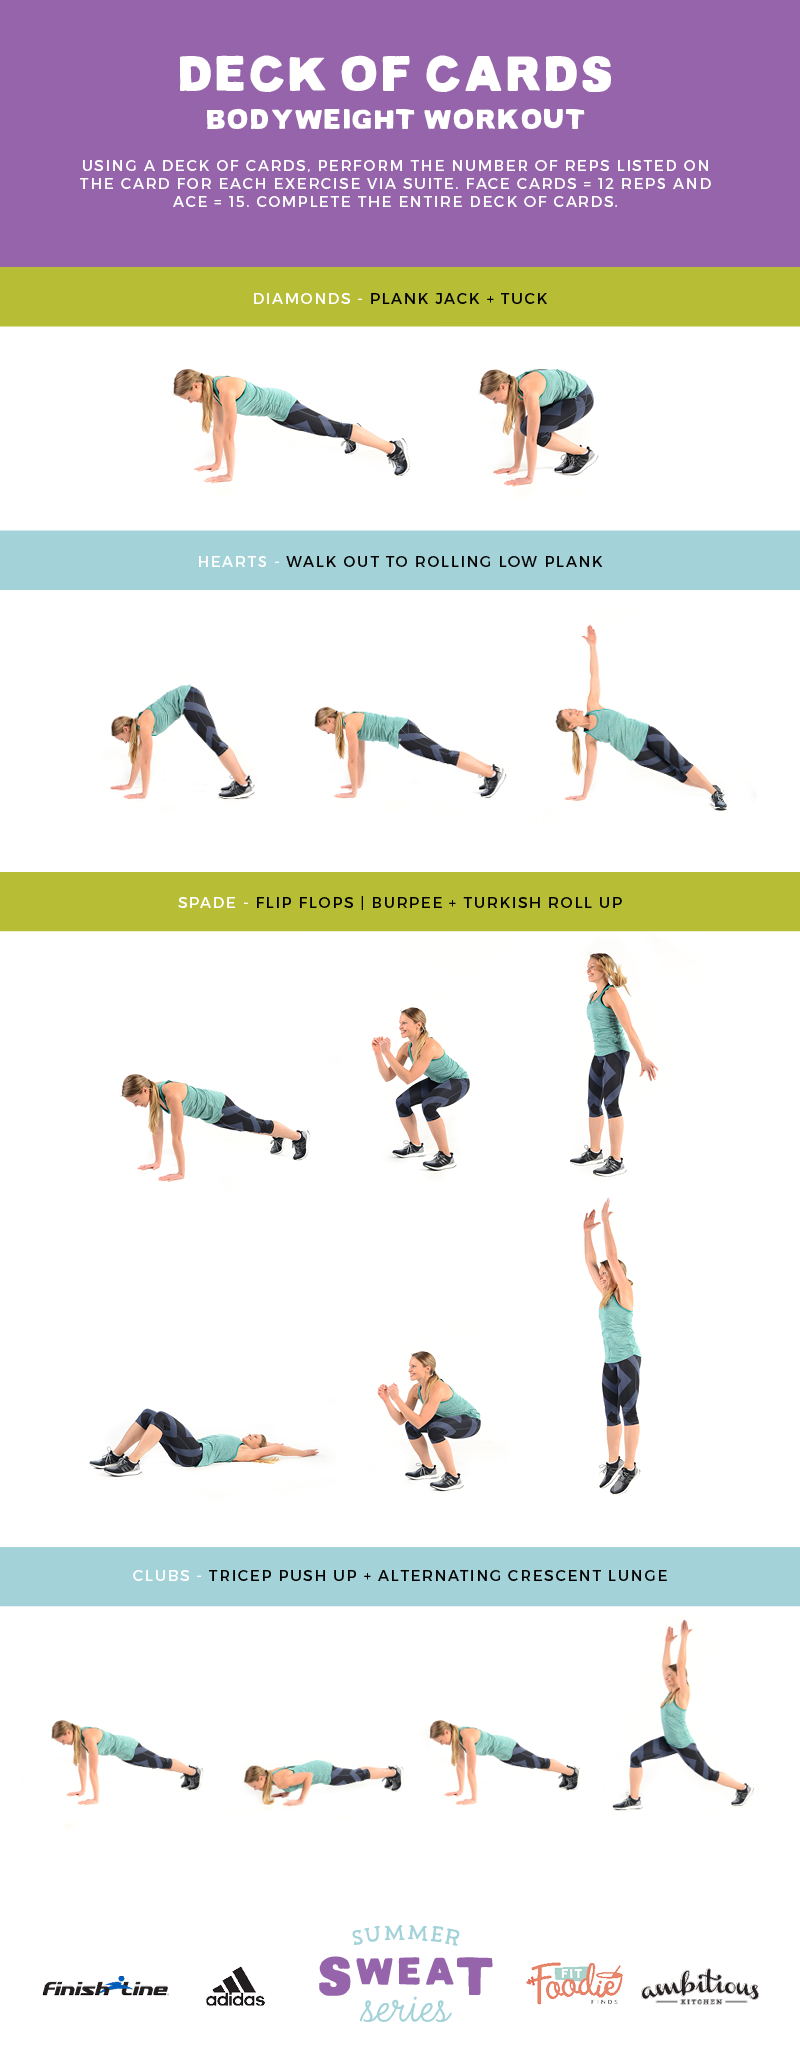 Deck of Cards Bodyweight Workout graphic